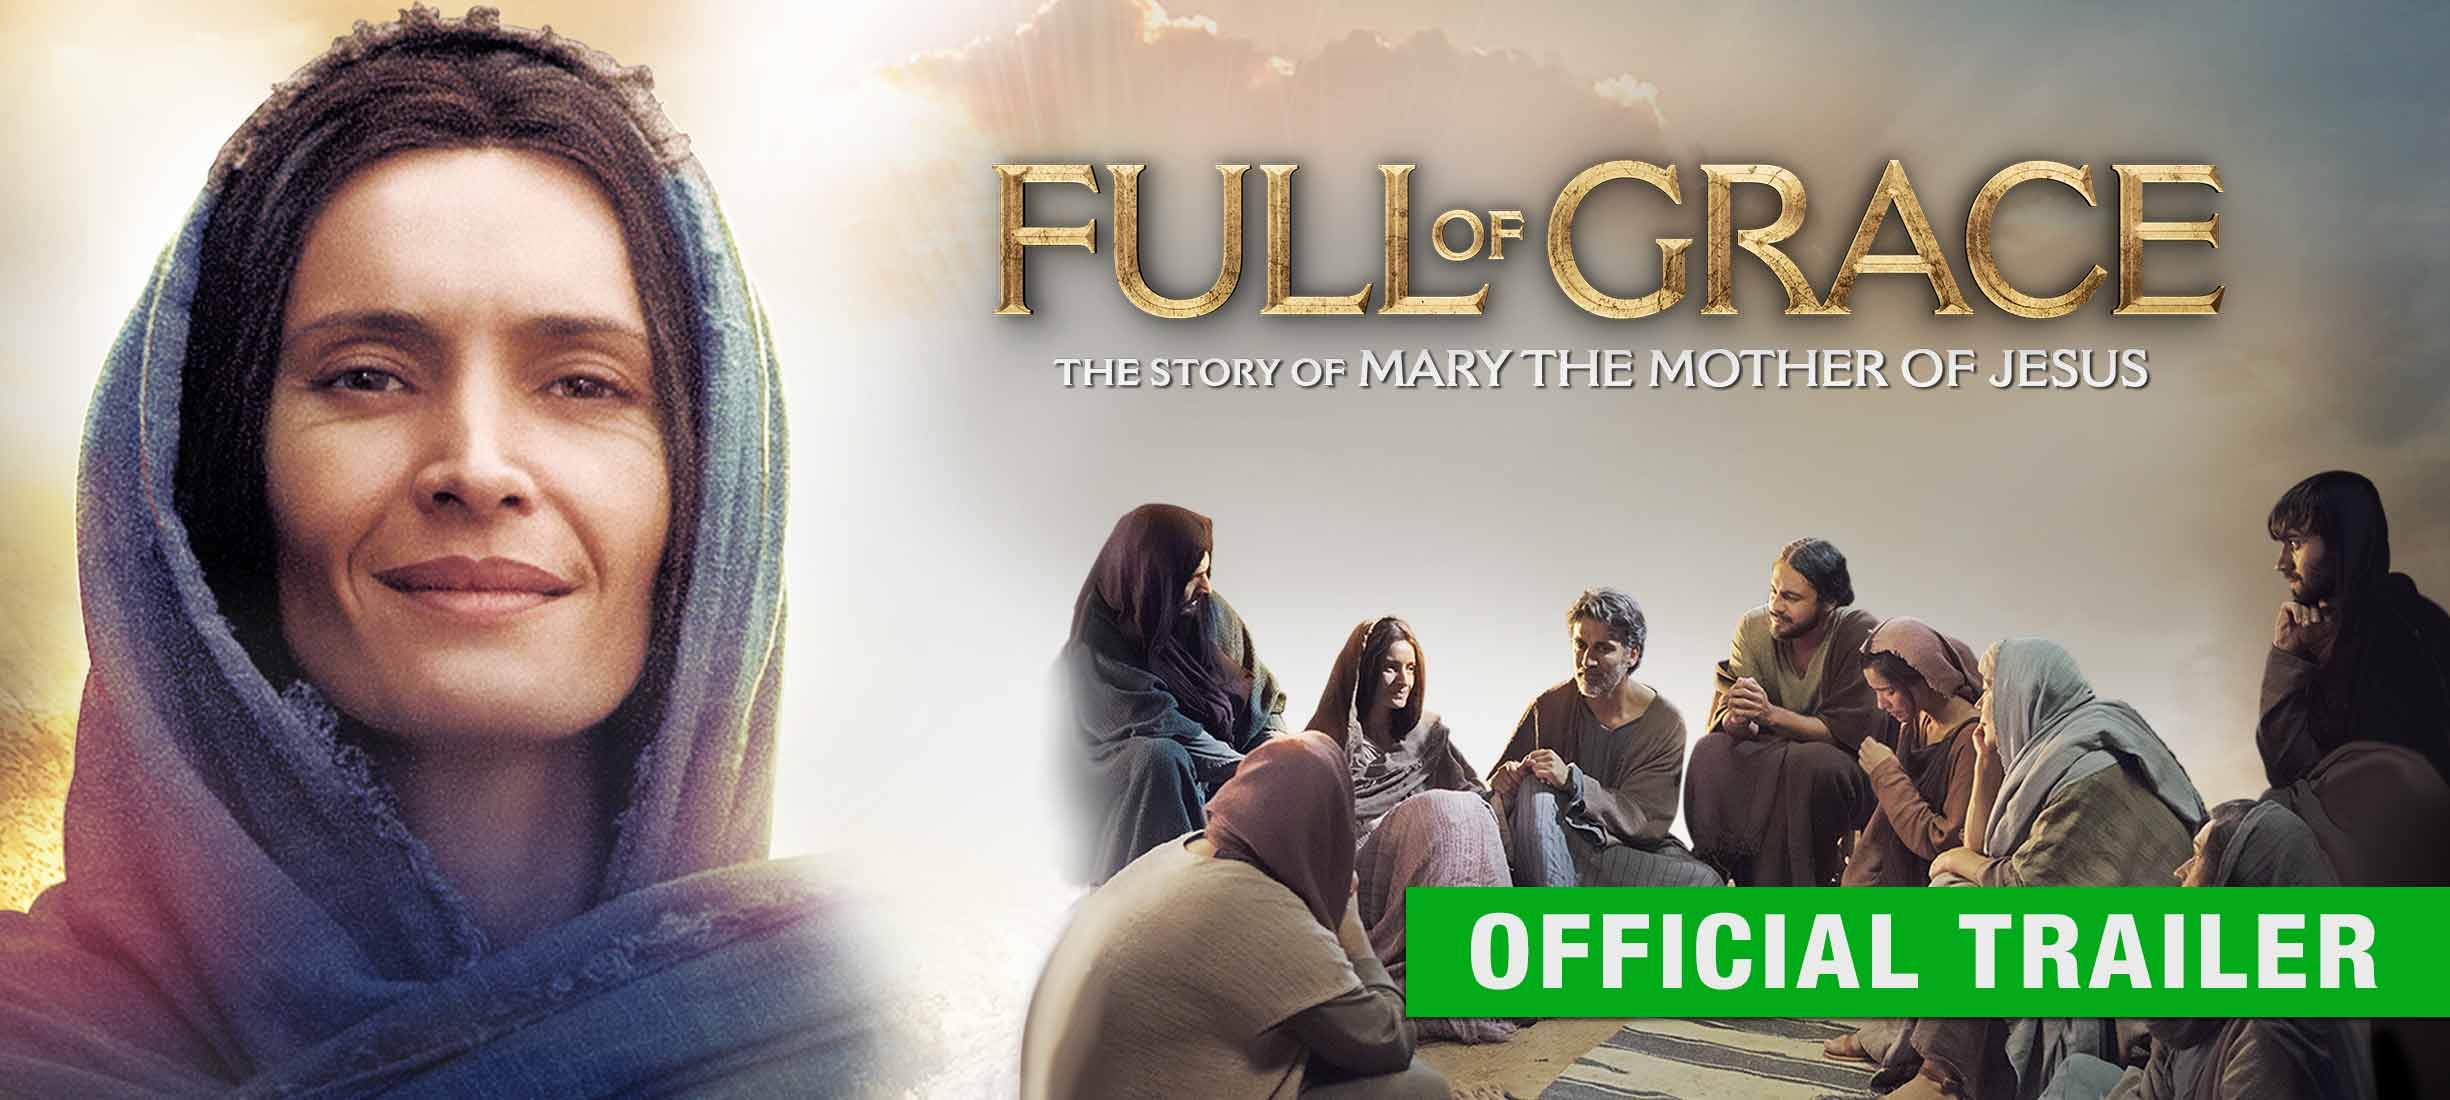 Full of Grace: Trailer